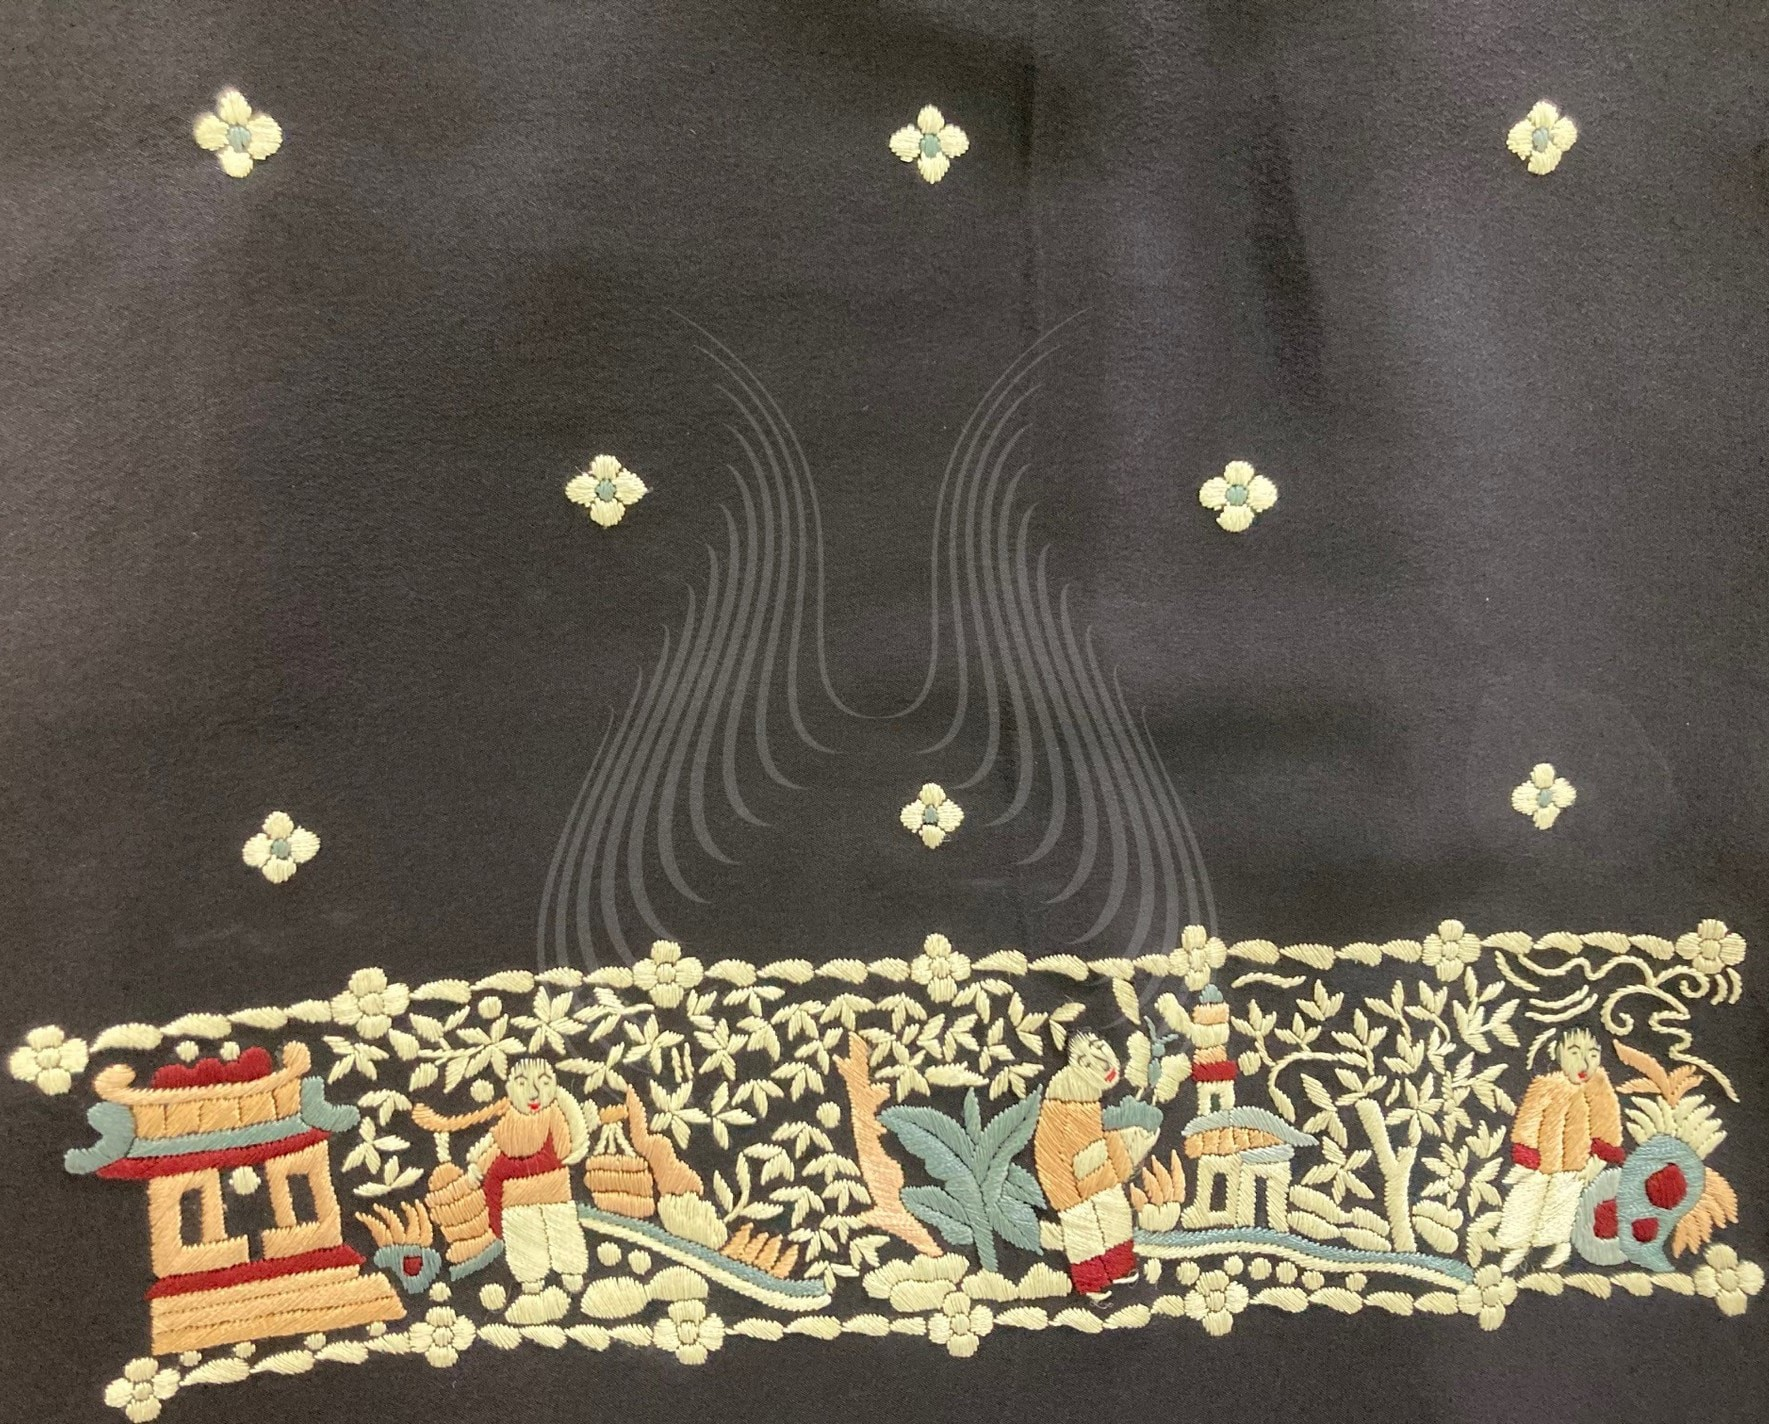 G 108 – Chinamen Motif with flowers